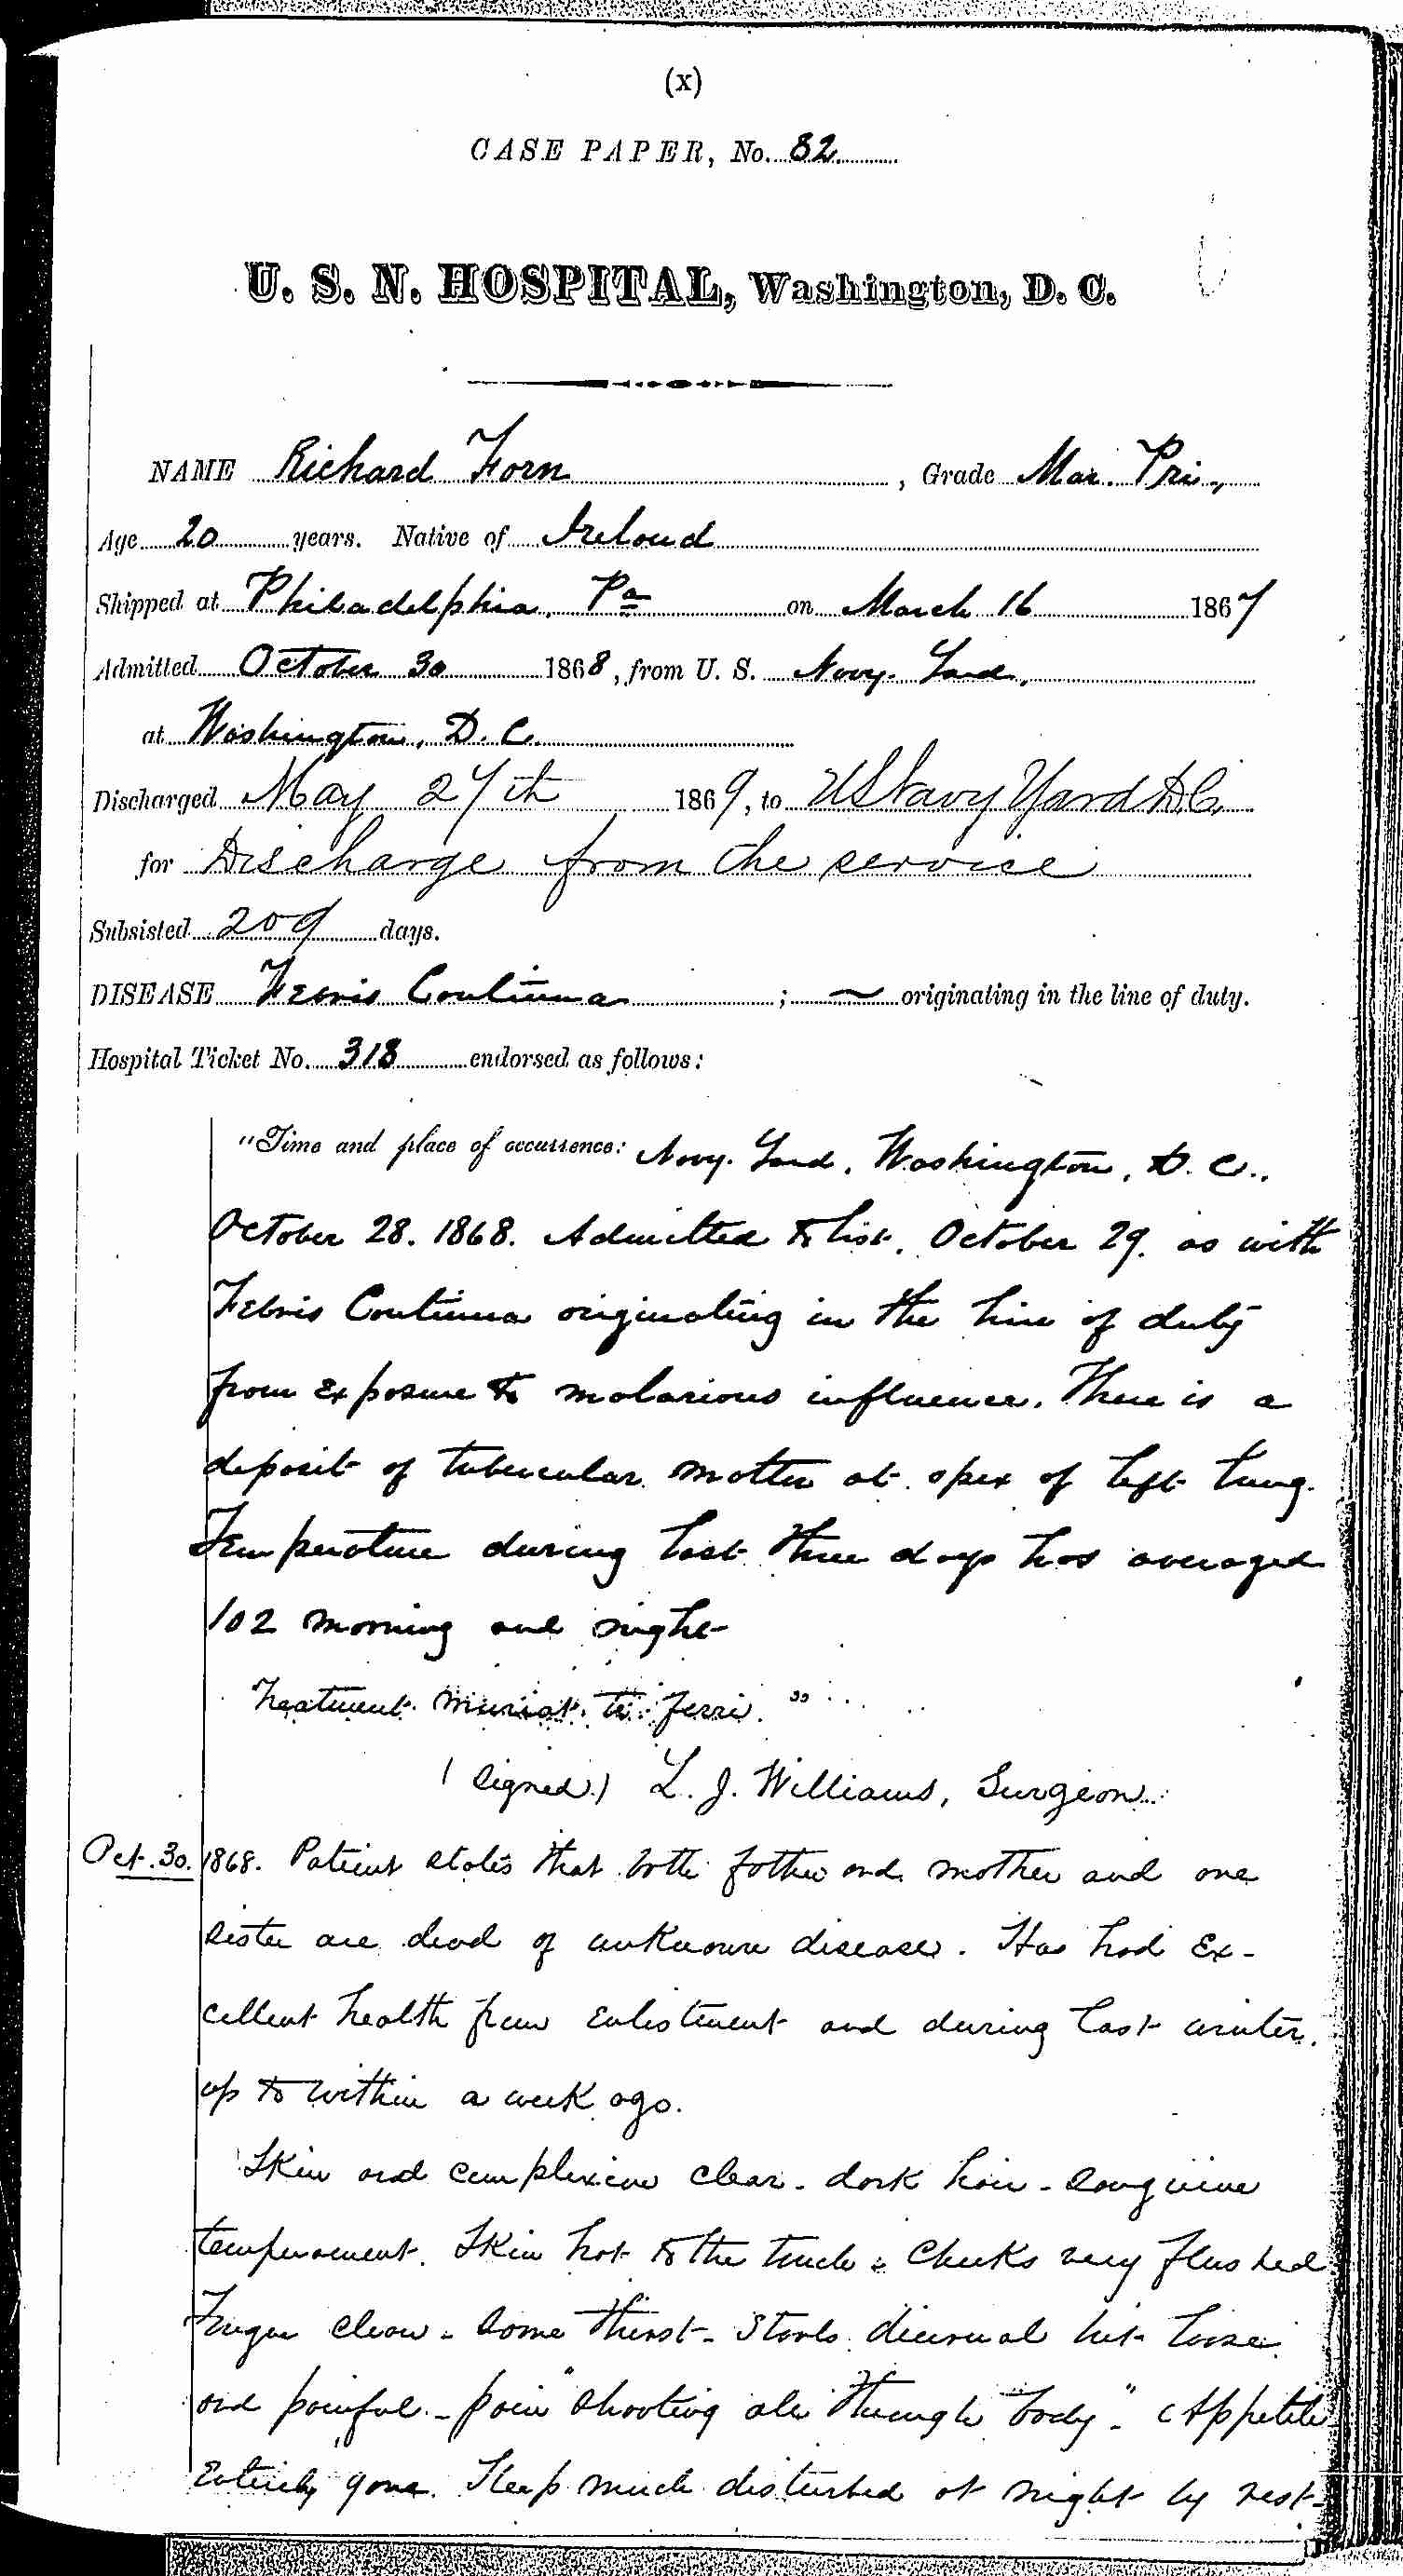 Entry for Richard Forn (page 1 of 21) in the log Hospital Tickets and Case Papers - Naval Hospital - Washington, D.C. - 1868-69